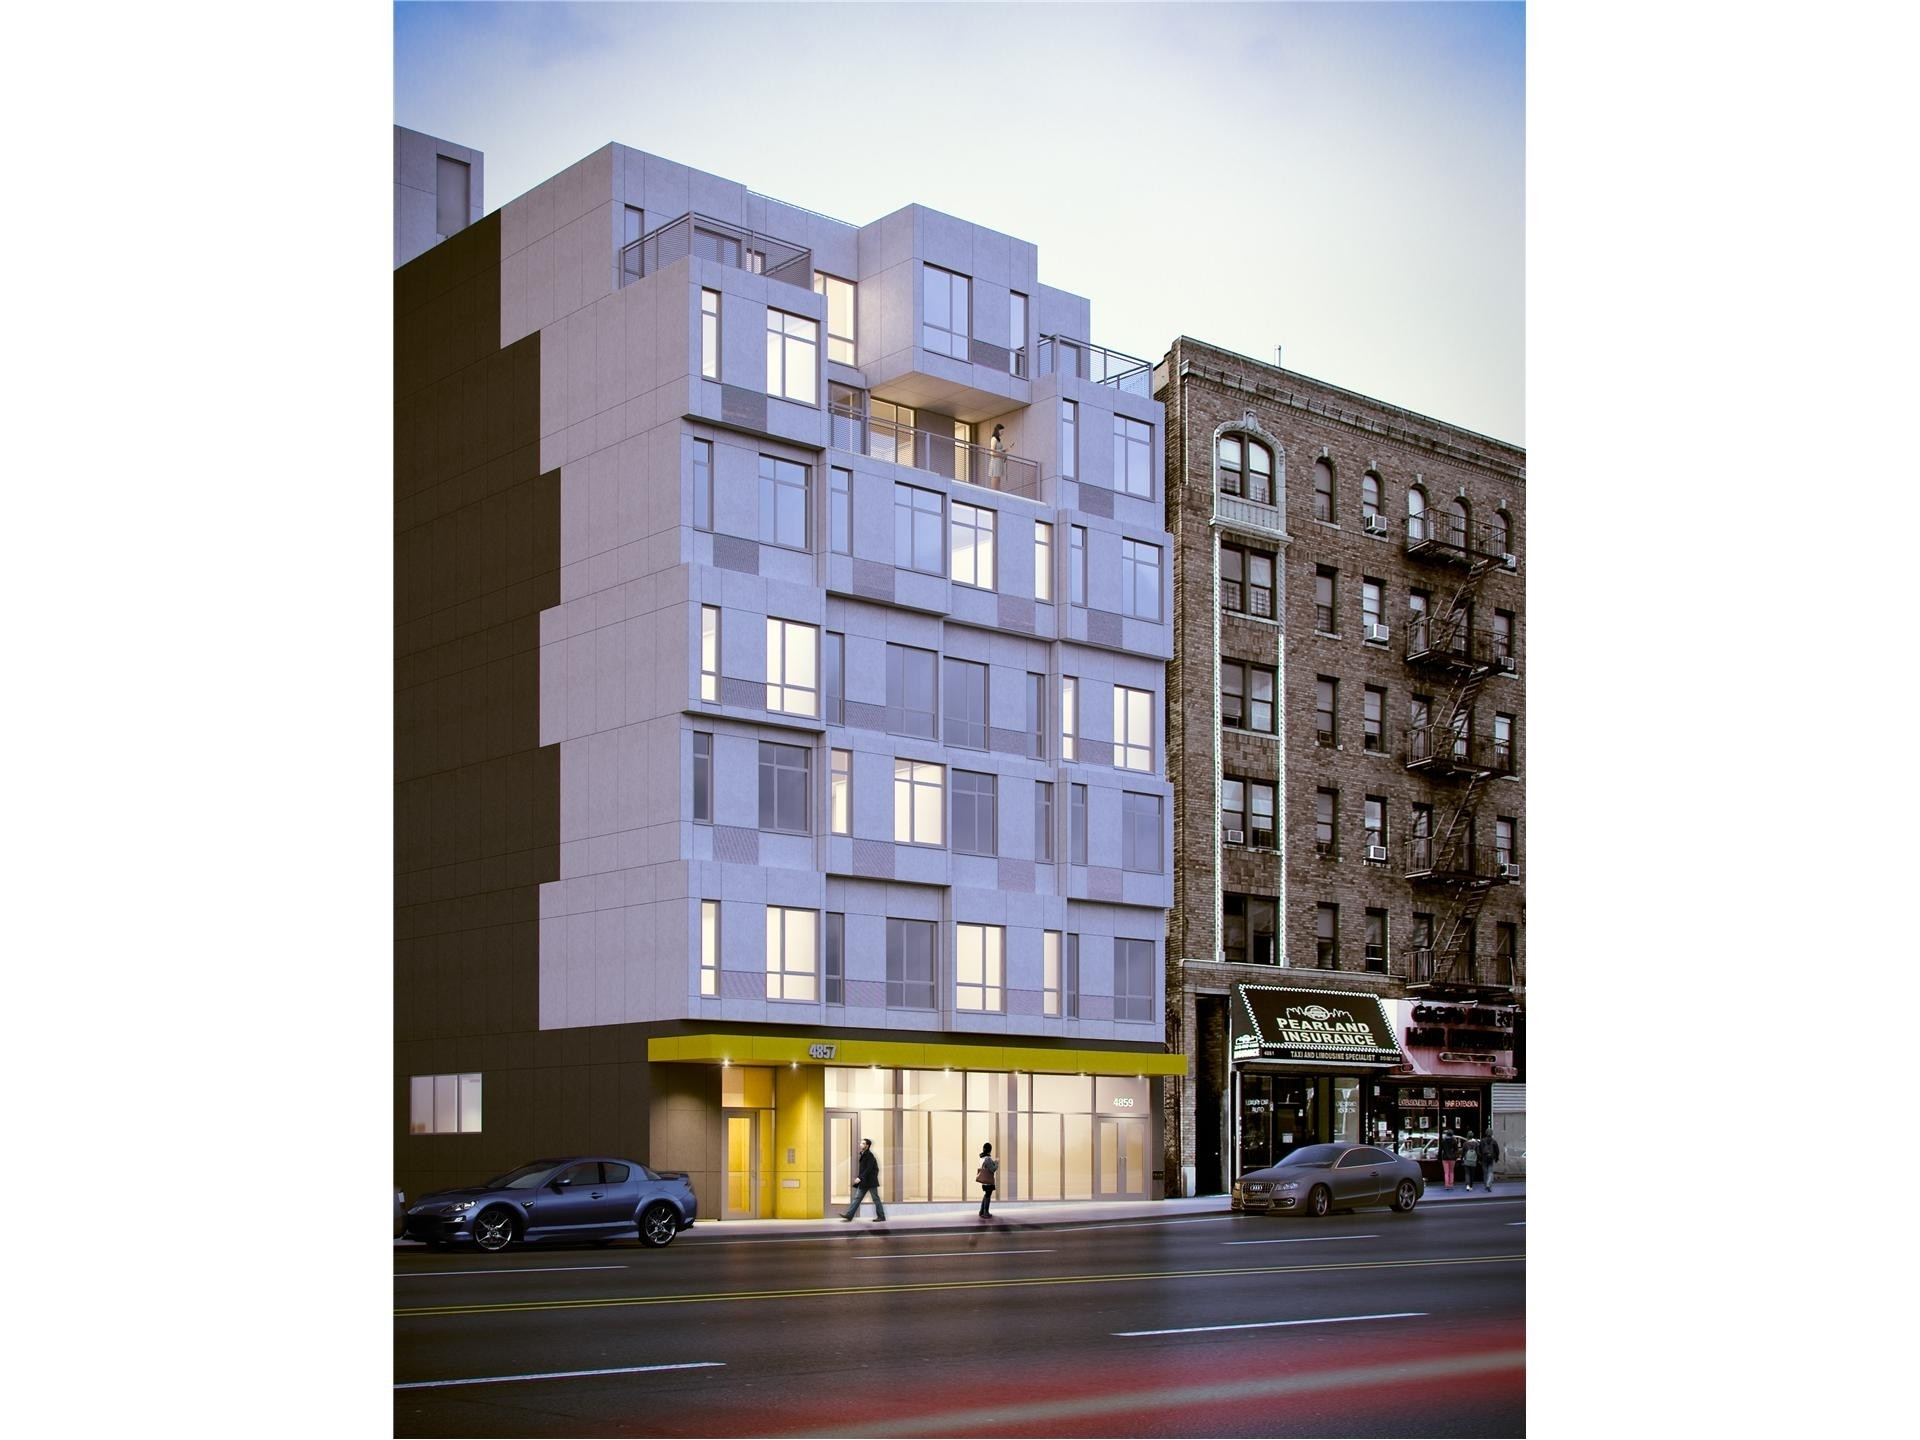 Property à The Stack, 4857 Broadway, 6A Inwood, New York, NY 10034